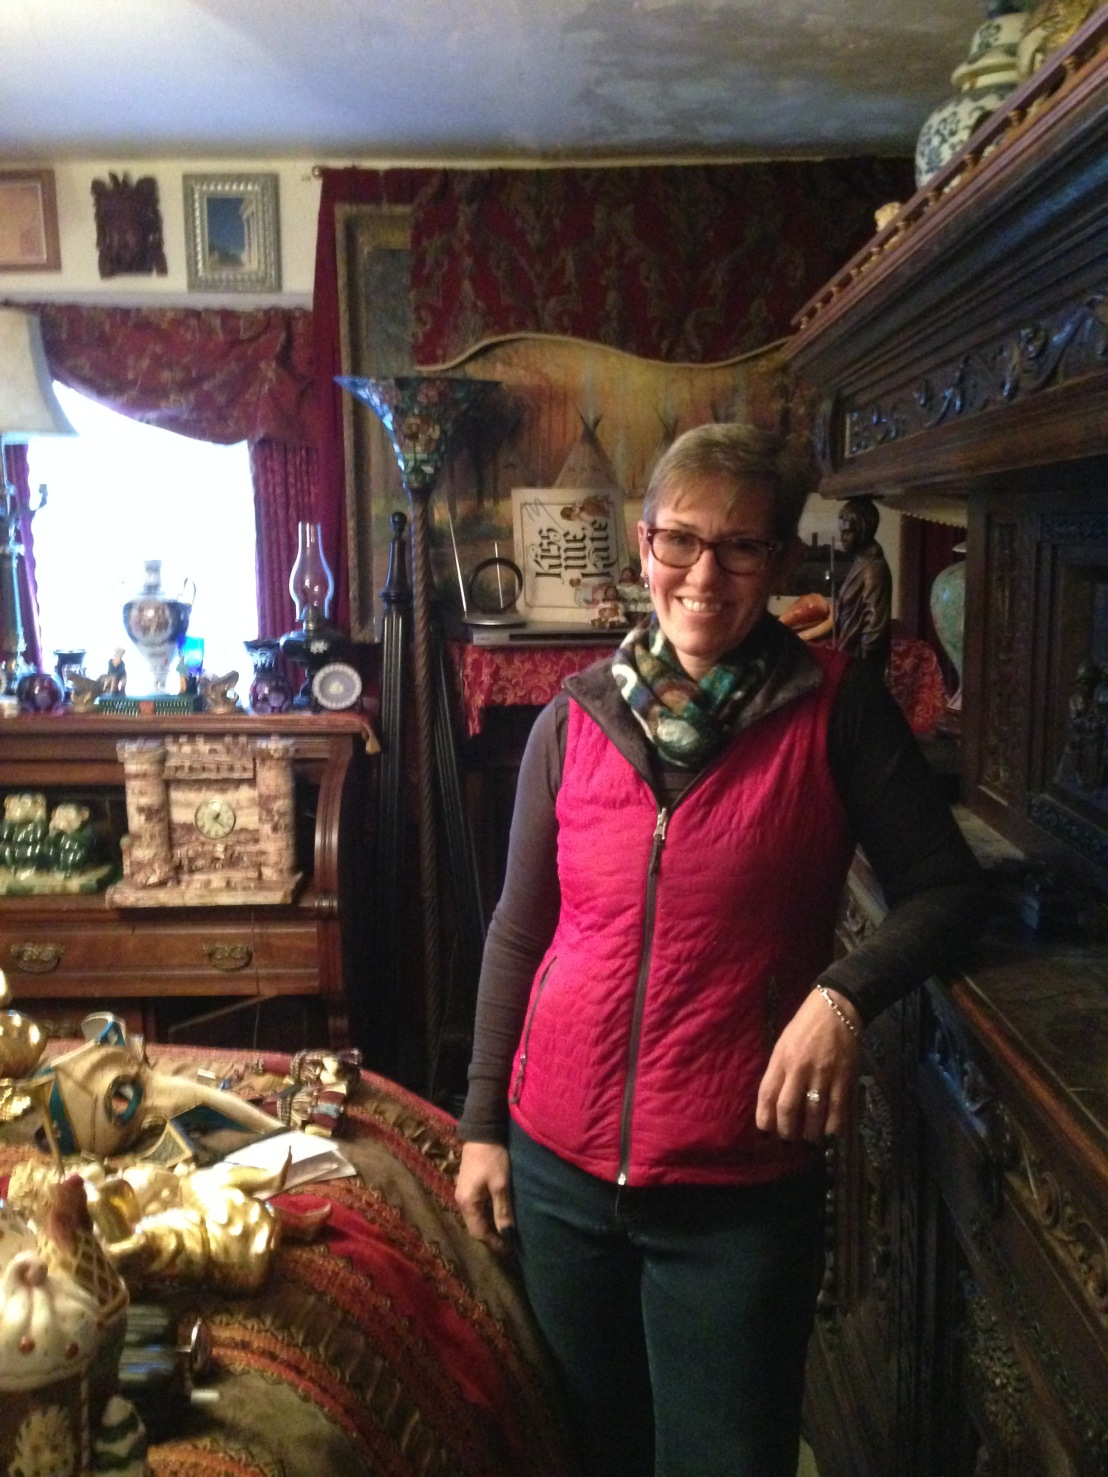 Special Guest: Robin Caton Antique Dealer Talks About Running an Estate Sale in a Hoarder's House